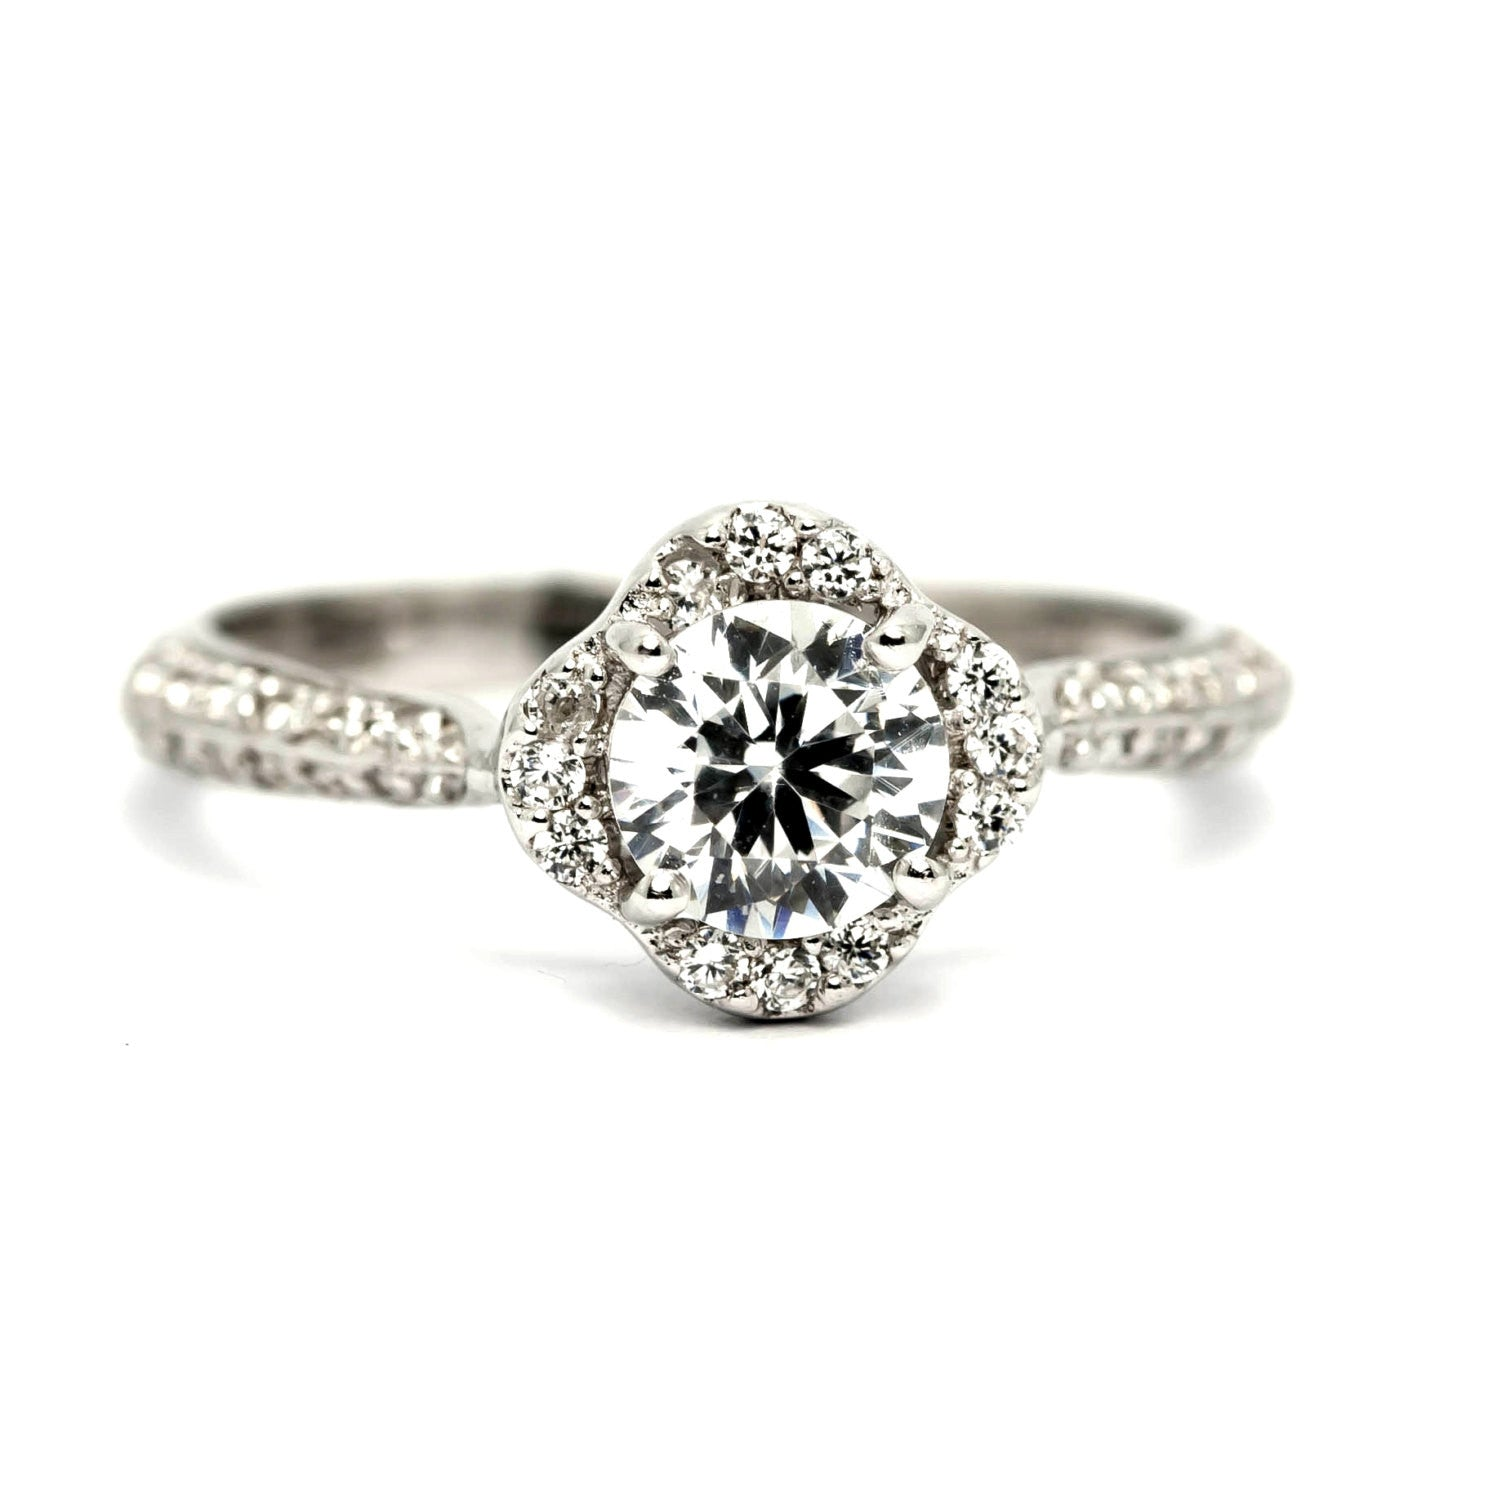 Unique Semi Mount Floating Halo For 1 Carat Center Stone Engagement Ring, 14k Gold, .35 carat of Diamonds - Y11652